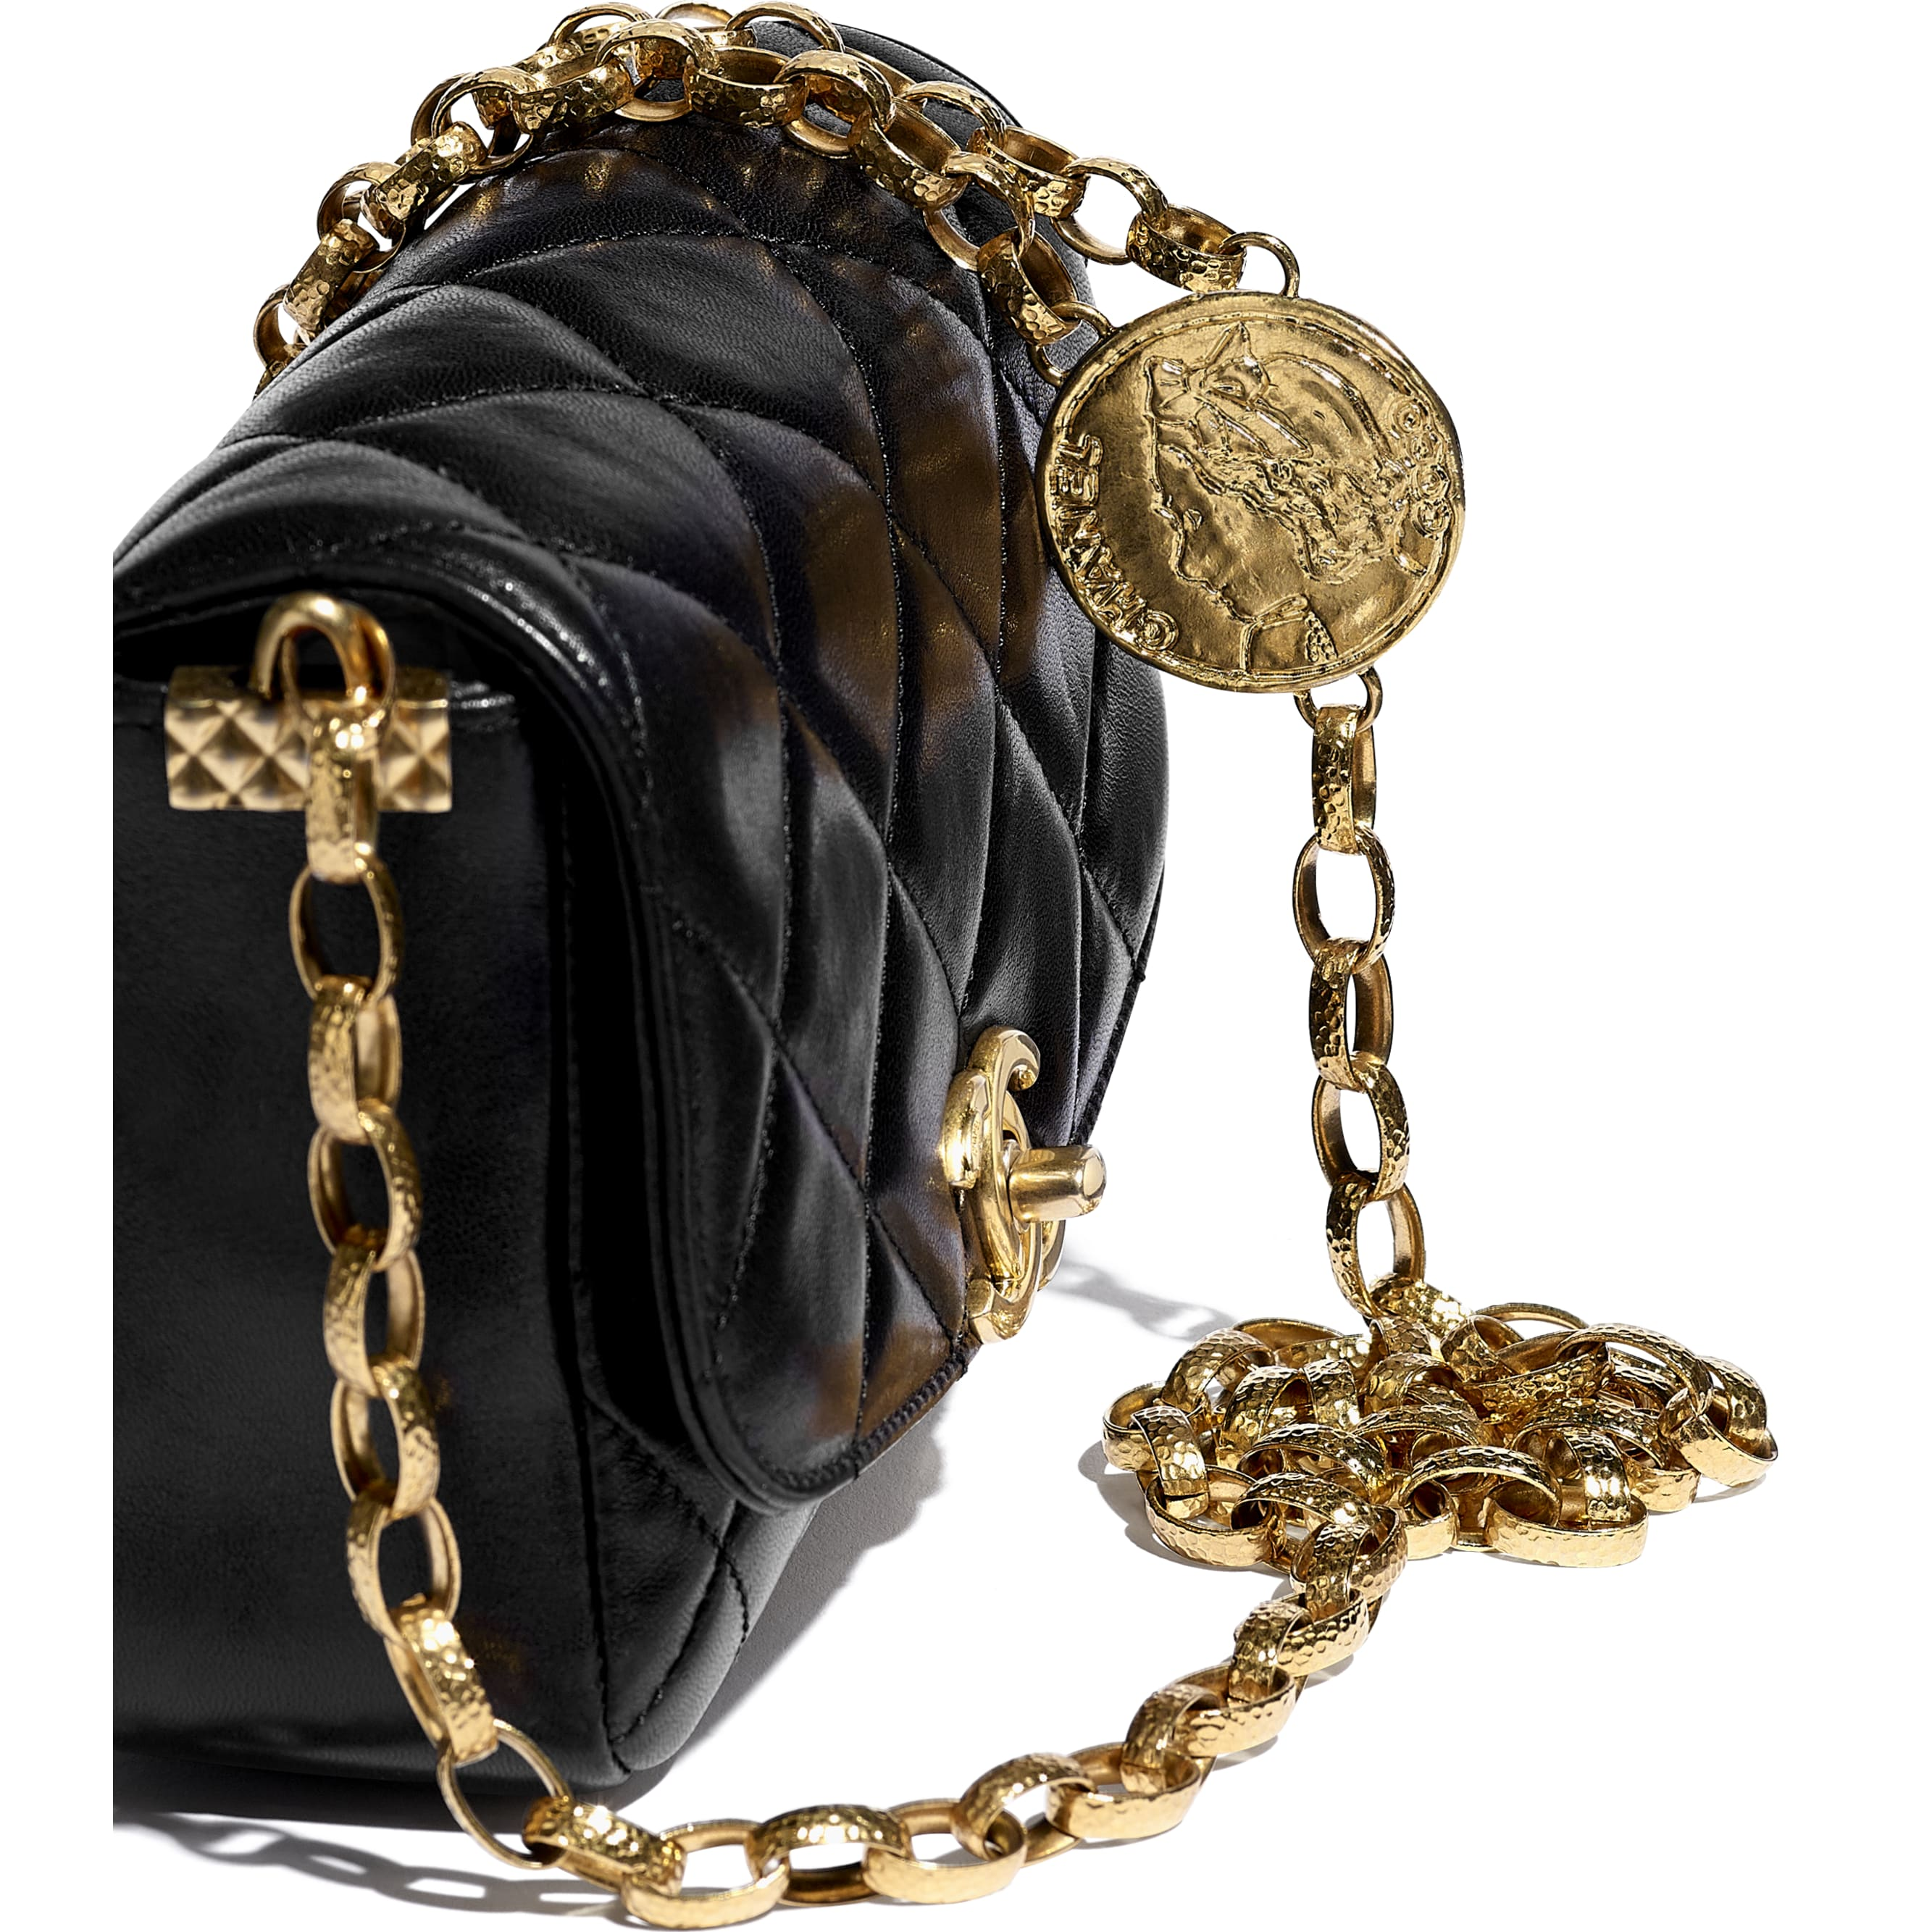 Small Flap Bag - Black - Lambskin & Gold-Tone Metal - CHANEL - Extra view - see standard sized version